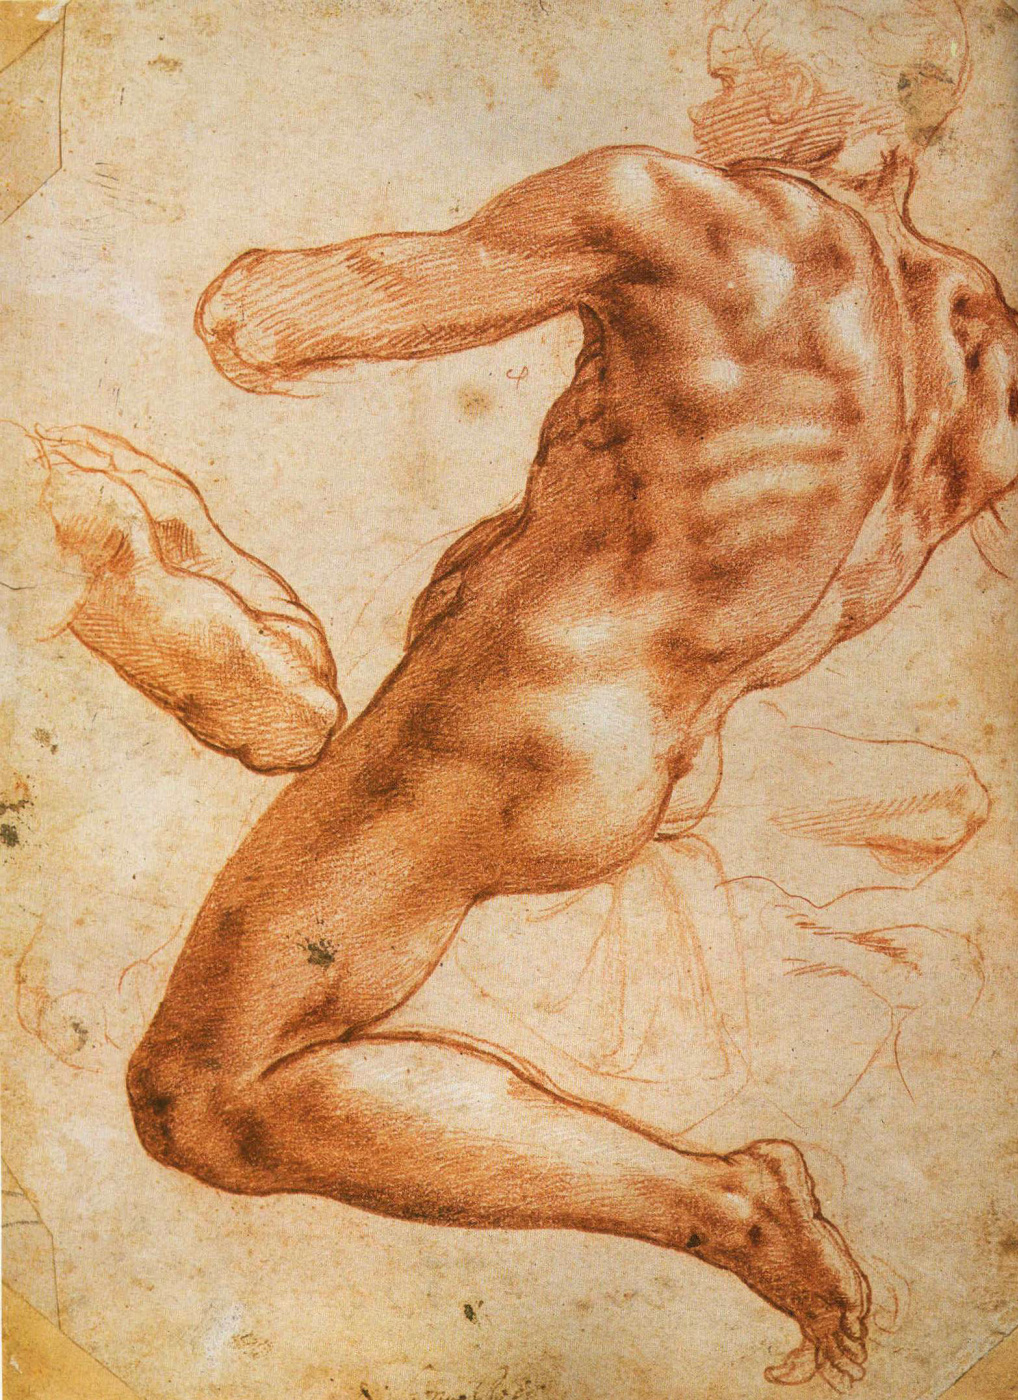 Michelangelo Buonarroti. Sketch of a naked man